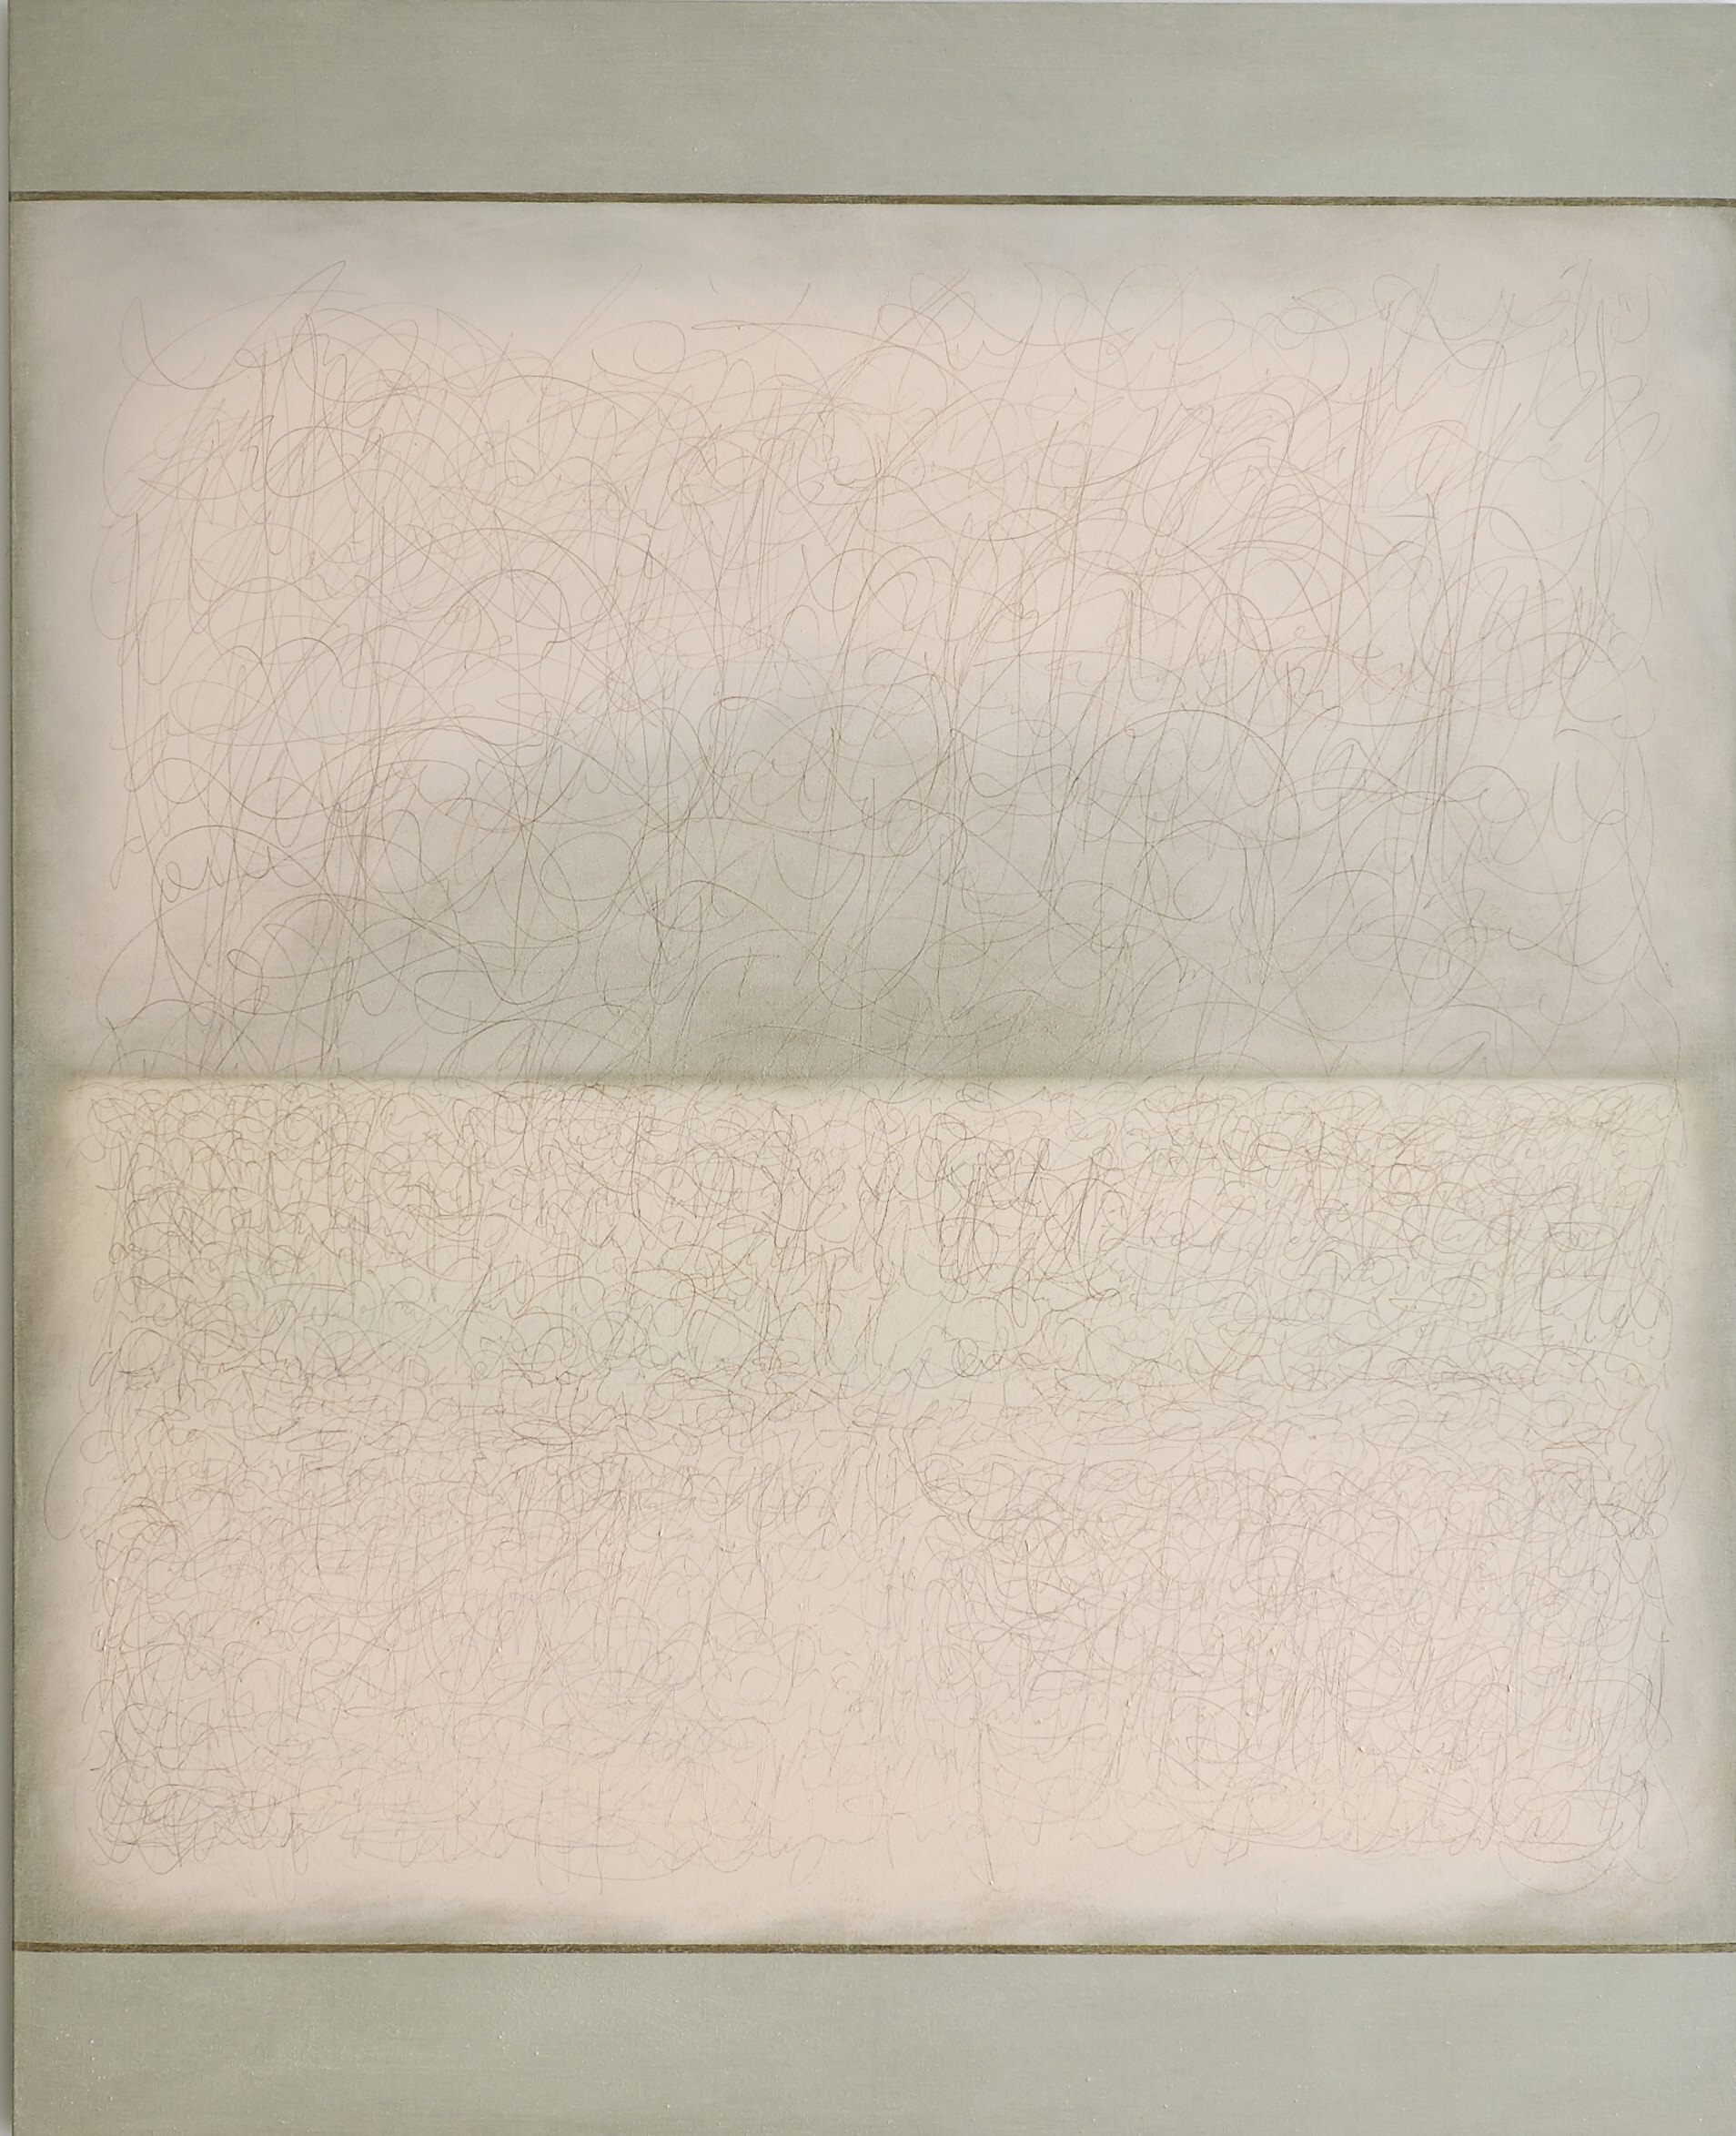 Richard Höglund, Sea Picture LVII (Rosy Fingers IV), 2016, silver, tin, lead and oil on linen prepared with bone pulver and marble dust, 226 x 183 cm